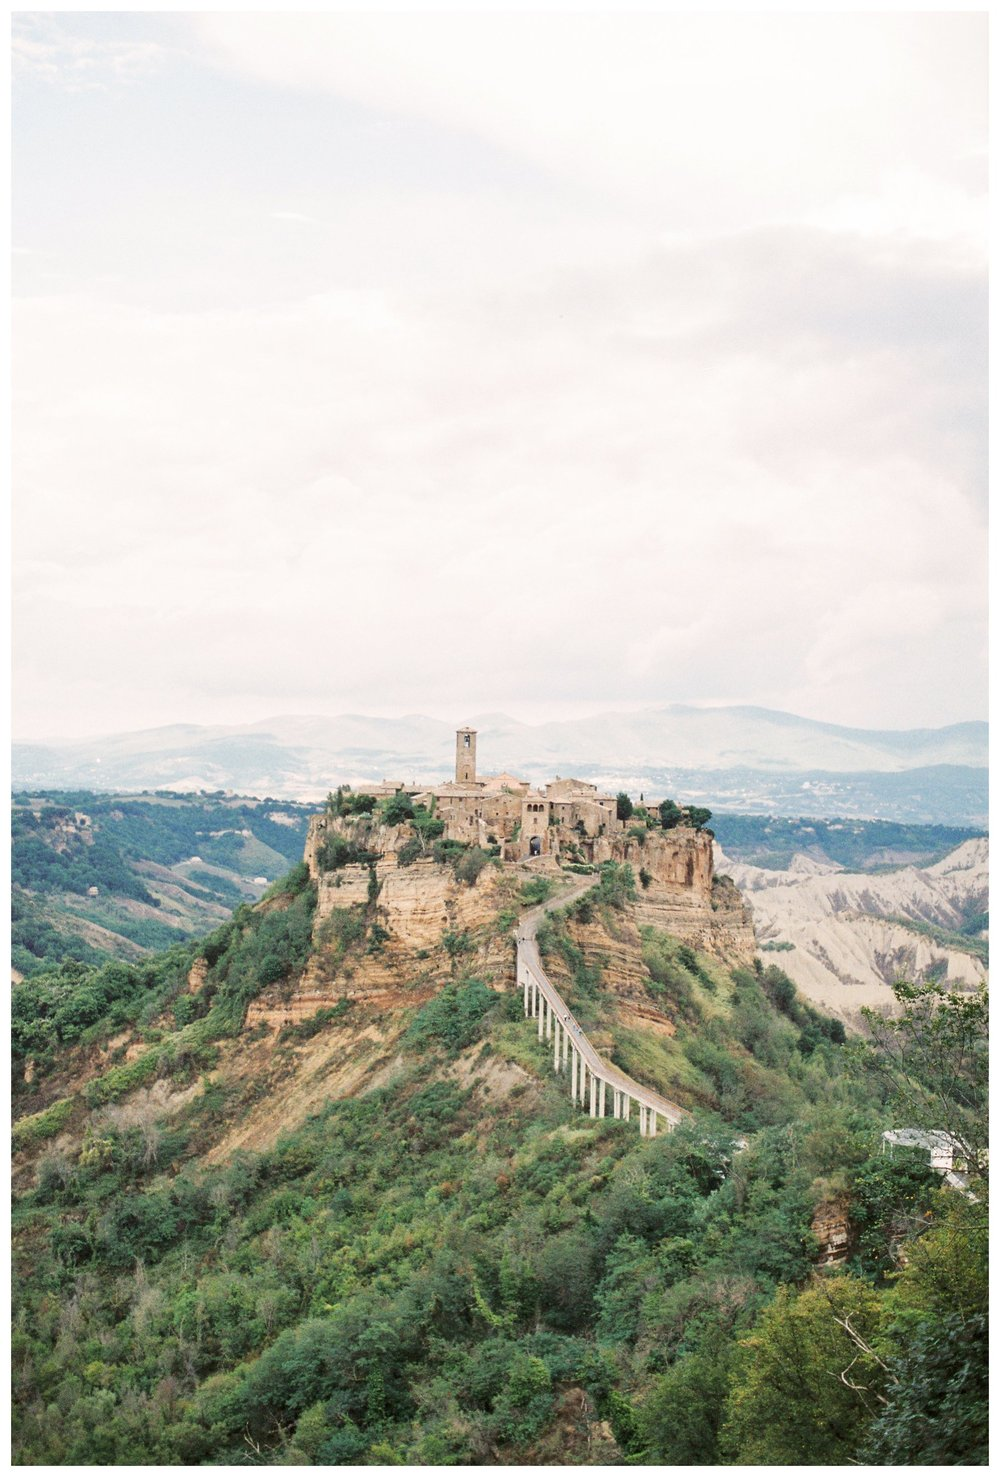 travel photography of the ancient village of Civita di Bagnoregio in Umbria, Italy